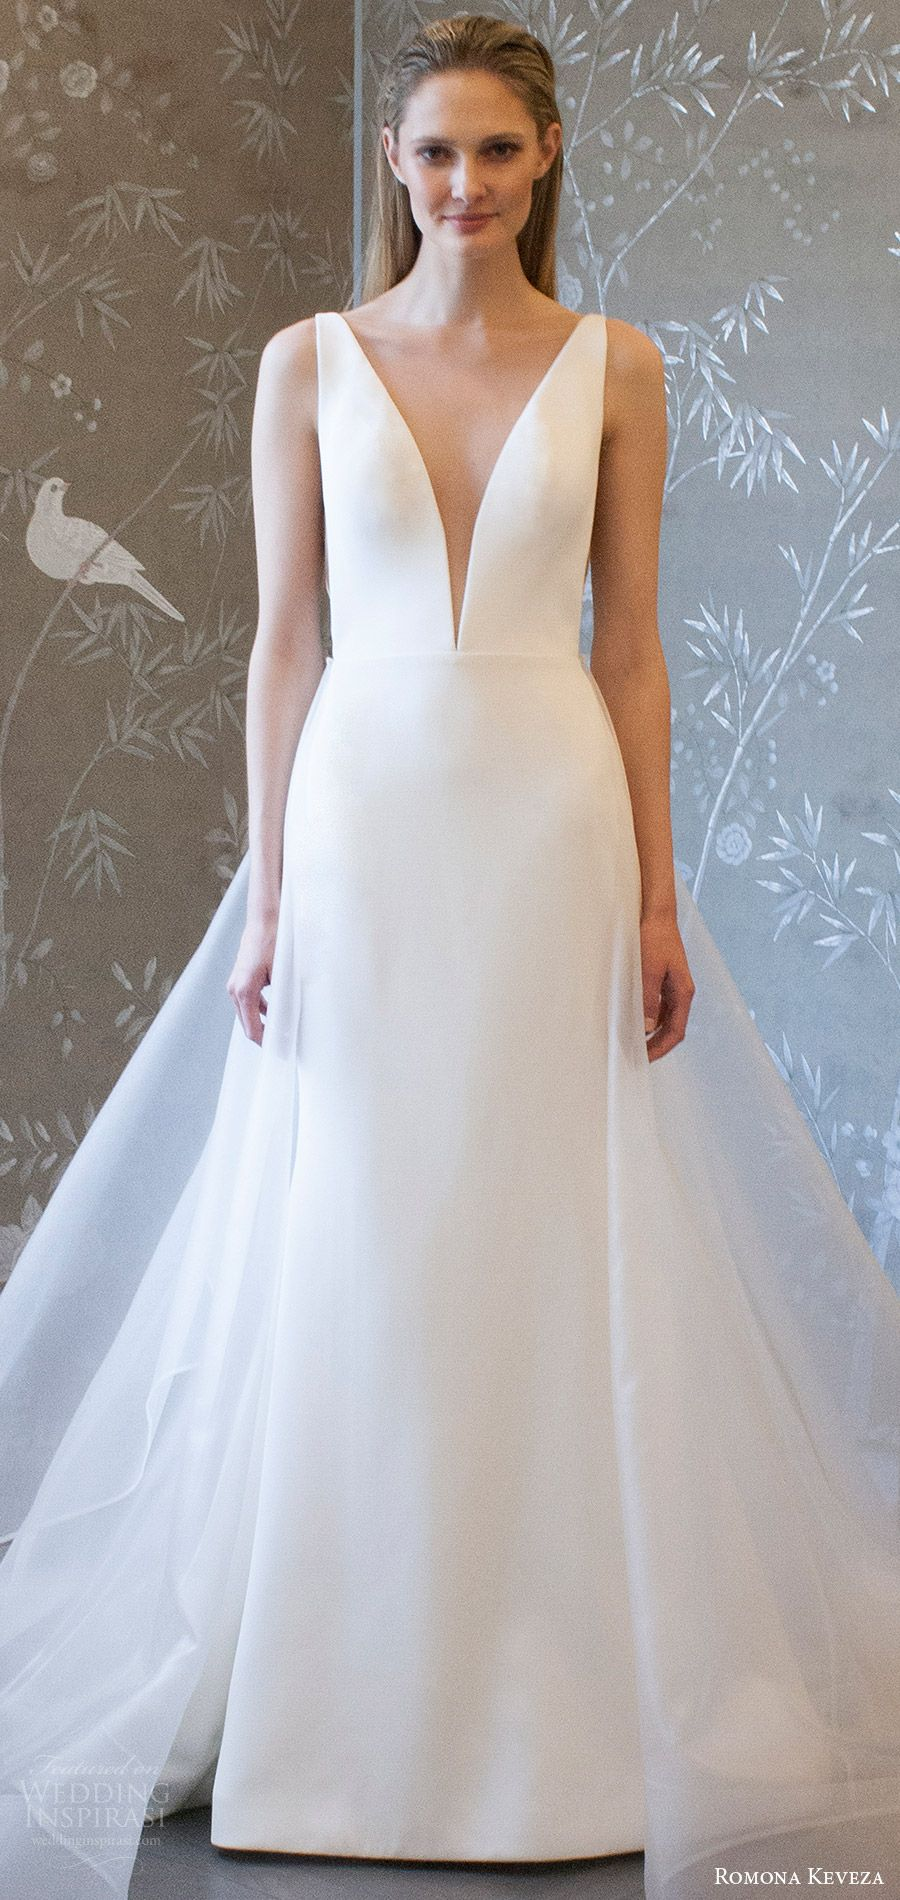 d0ac7b000a428 romona keveza spring 2018 bridal sleeveless deep v neck a line trumpet wedding  dress (rk8400) mv detachable overskirt modern -- Romona Keveza Collection  ...